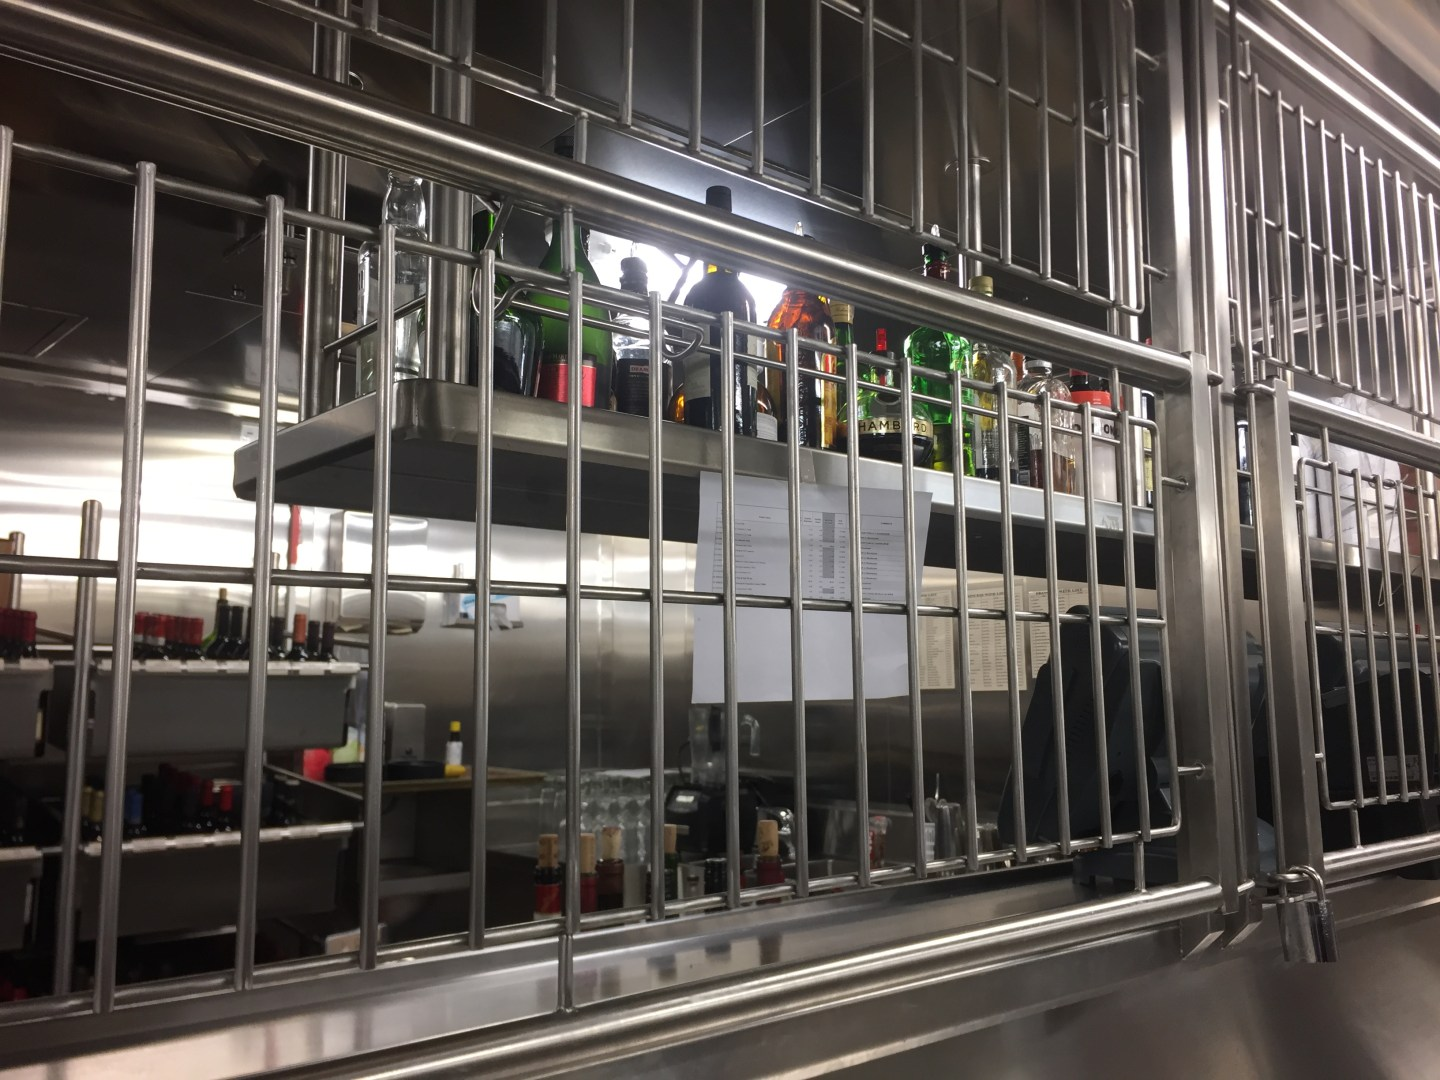 When you order a drink in the main dining room, the waiting staff can get it from a caged section of the galley.